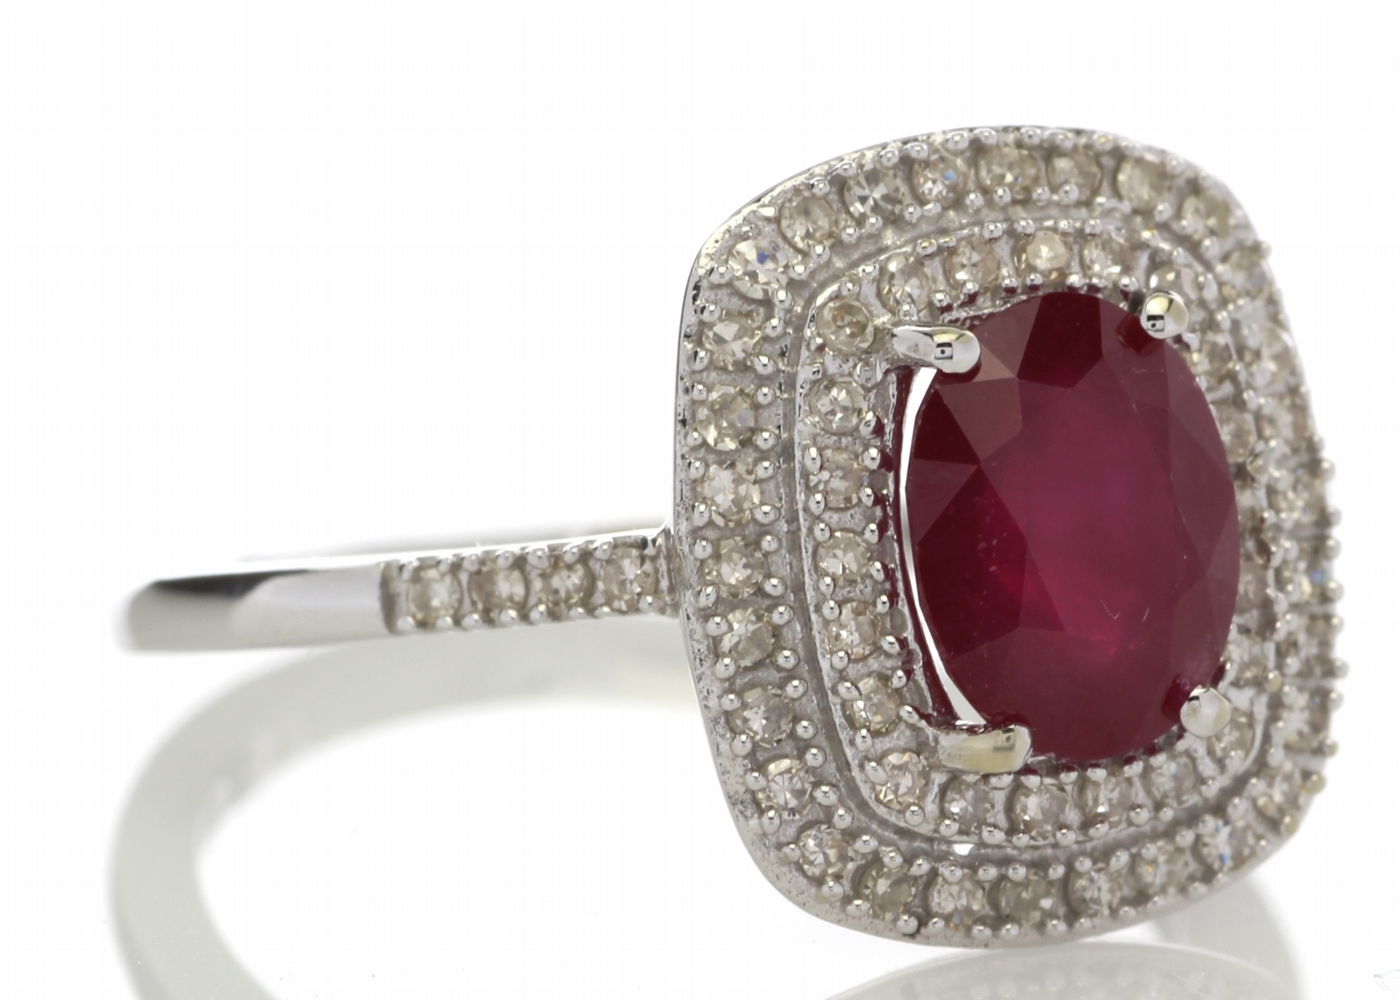 Lot 41 - 9ct White Gold Oval Ruby And Diamond Cluster Diamond Ring 0.33 Carats